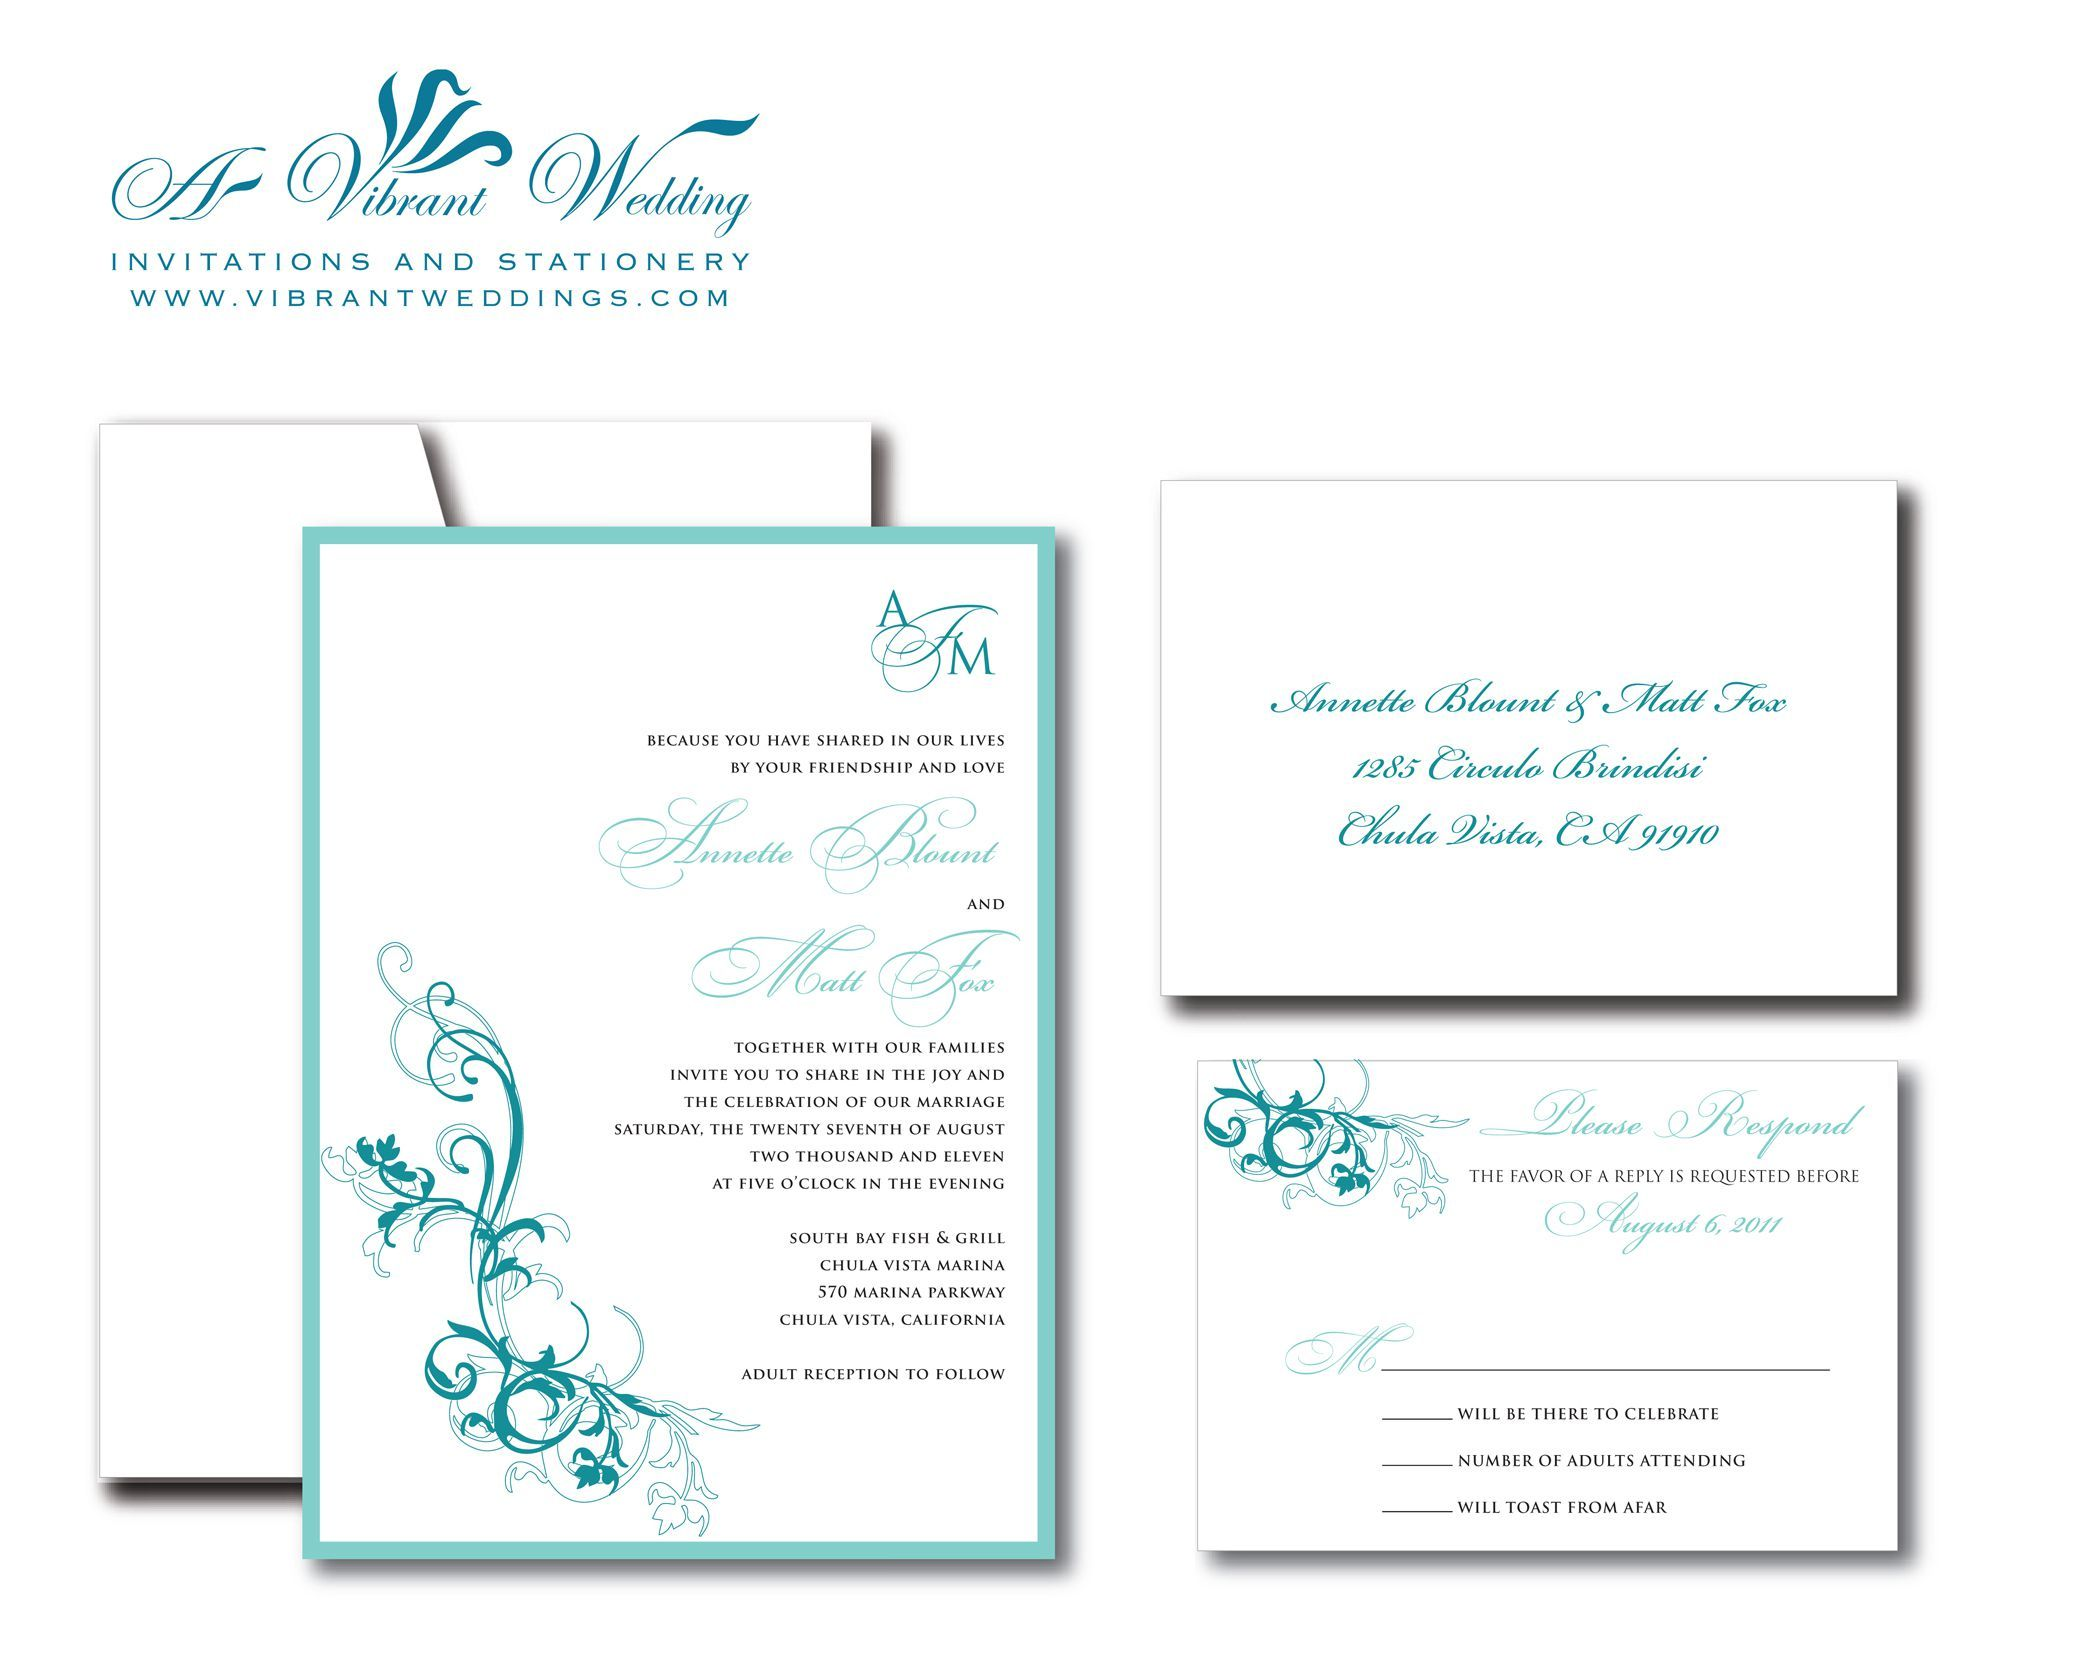 Sample Of Invitation Card Free Wedding Invitation Templates Free Wedding Invitations Wedding Invitation Templates